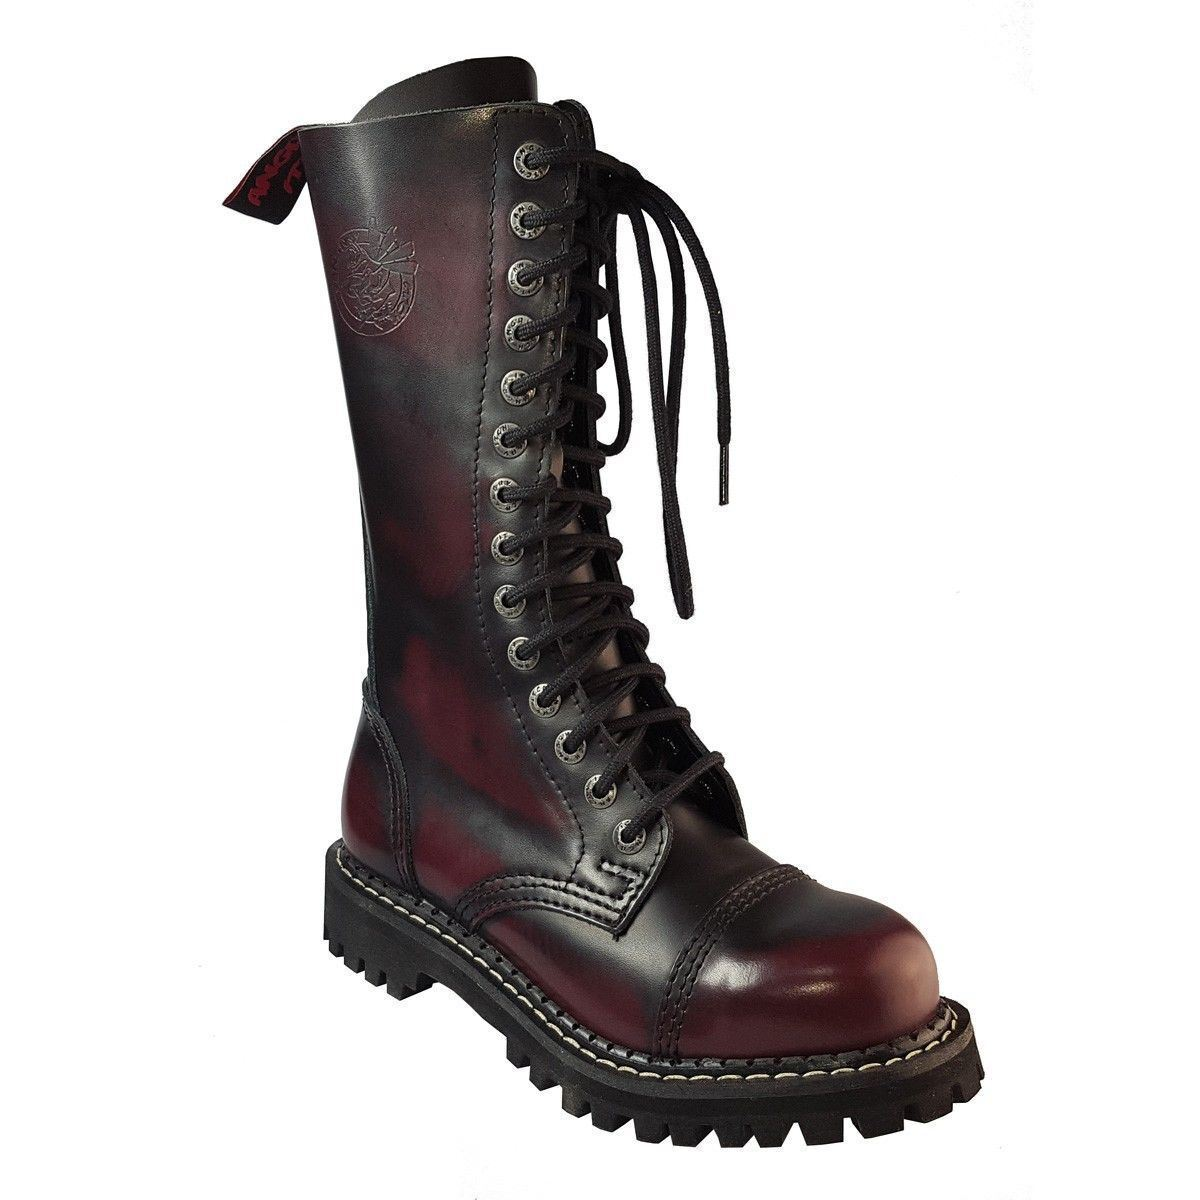 Angry Itch Rosso 14 FORI Rosso Itch Bordeaux in Pelle Anfibi Ranger Acciaio Toe Zip Punk aa1a64